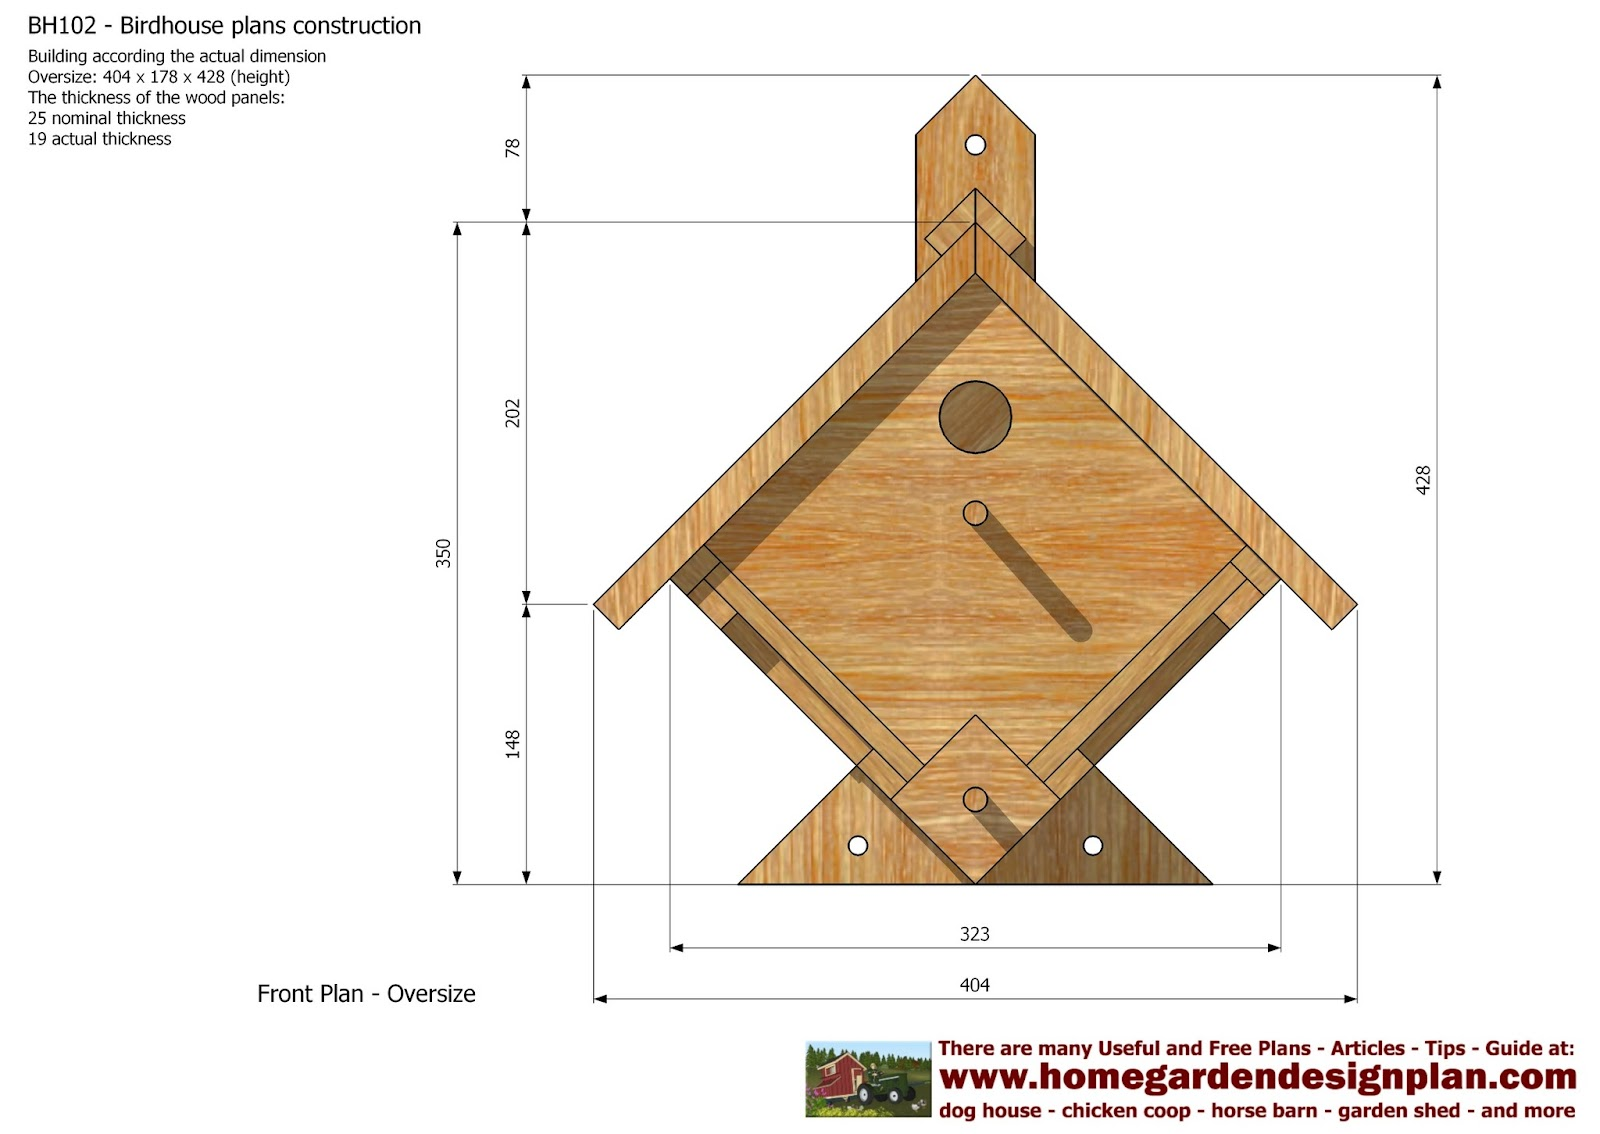 Home garden plans bh102 bird house plans construction for Build a home online free